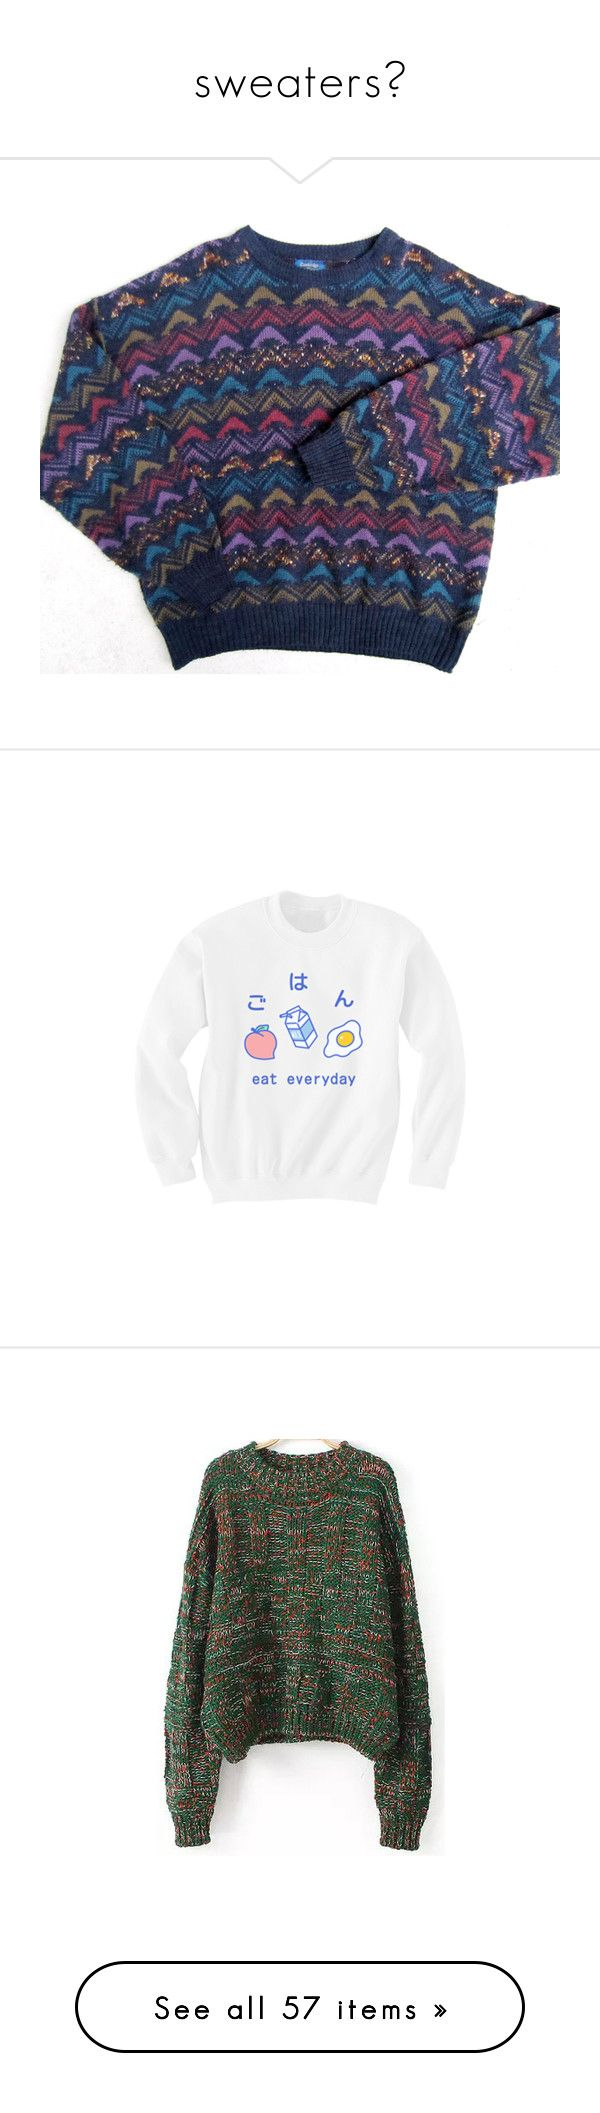 """""""sweaters🍂"""" by rotchenkova ❤ liked on Polyvore featuring men's fashion, men's clothing, men's sweaters, tops, sweaters, jumpers, shirts, mens christmas jumpers, mens short sleeve sweater and vintage mens sweaters"""